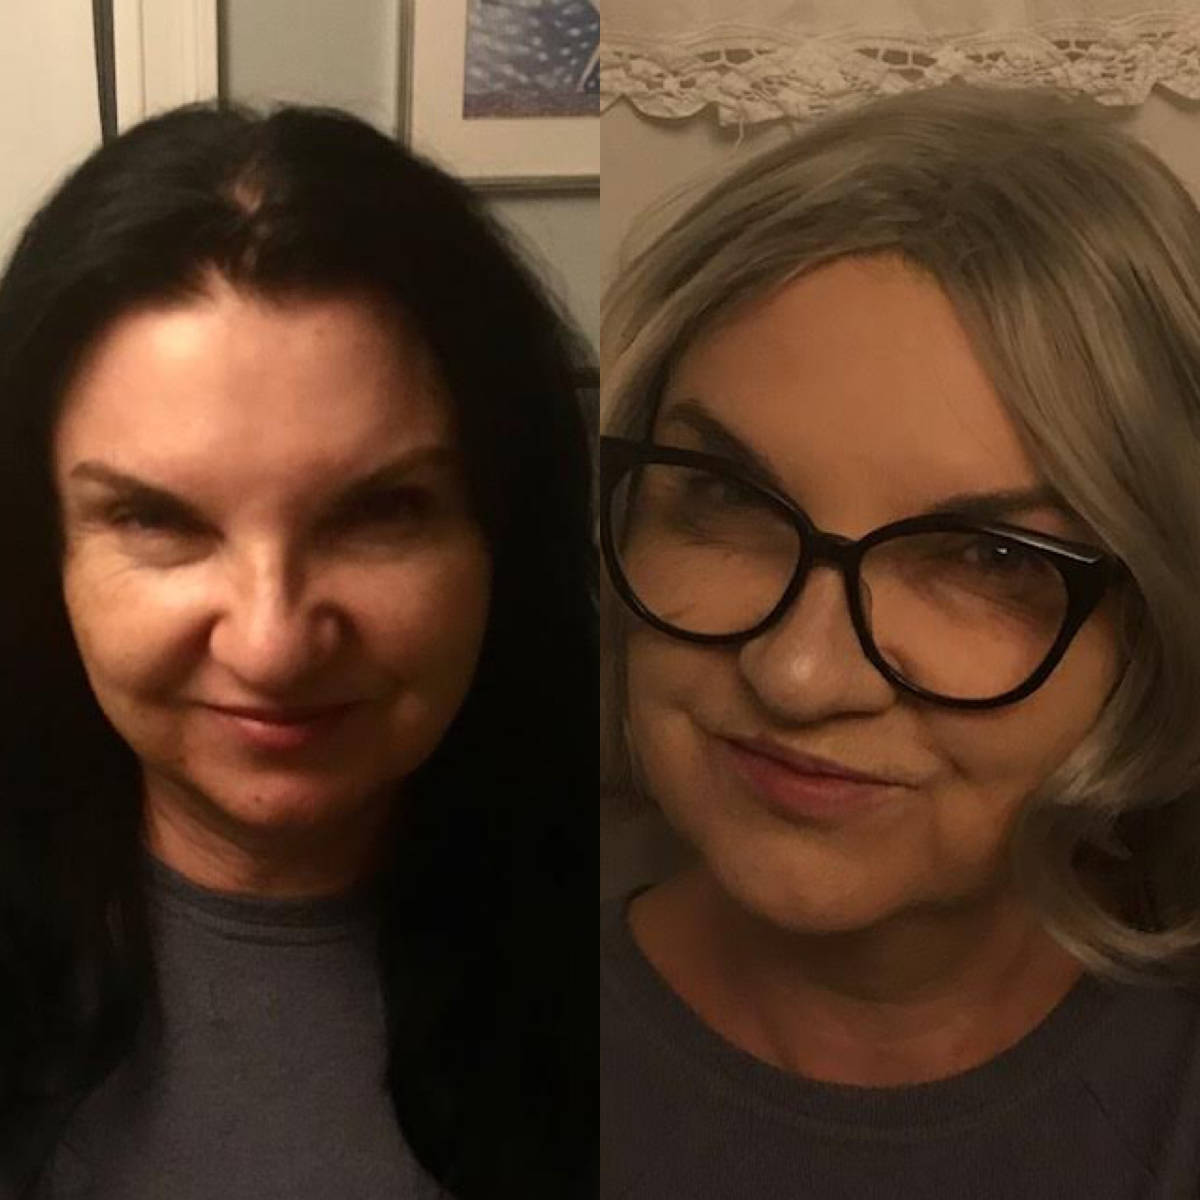 Cast member Liz shows us a before and after of her makeup.